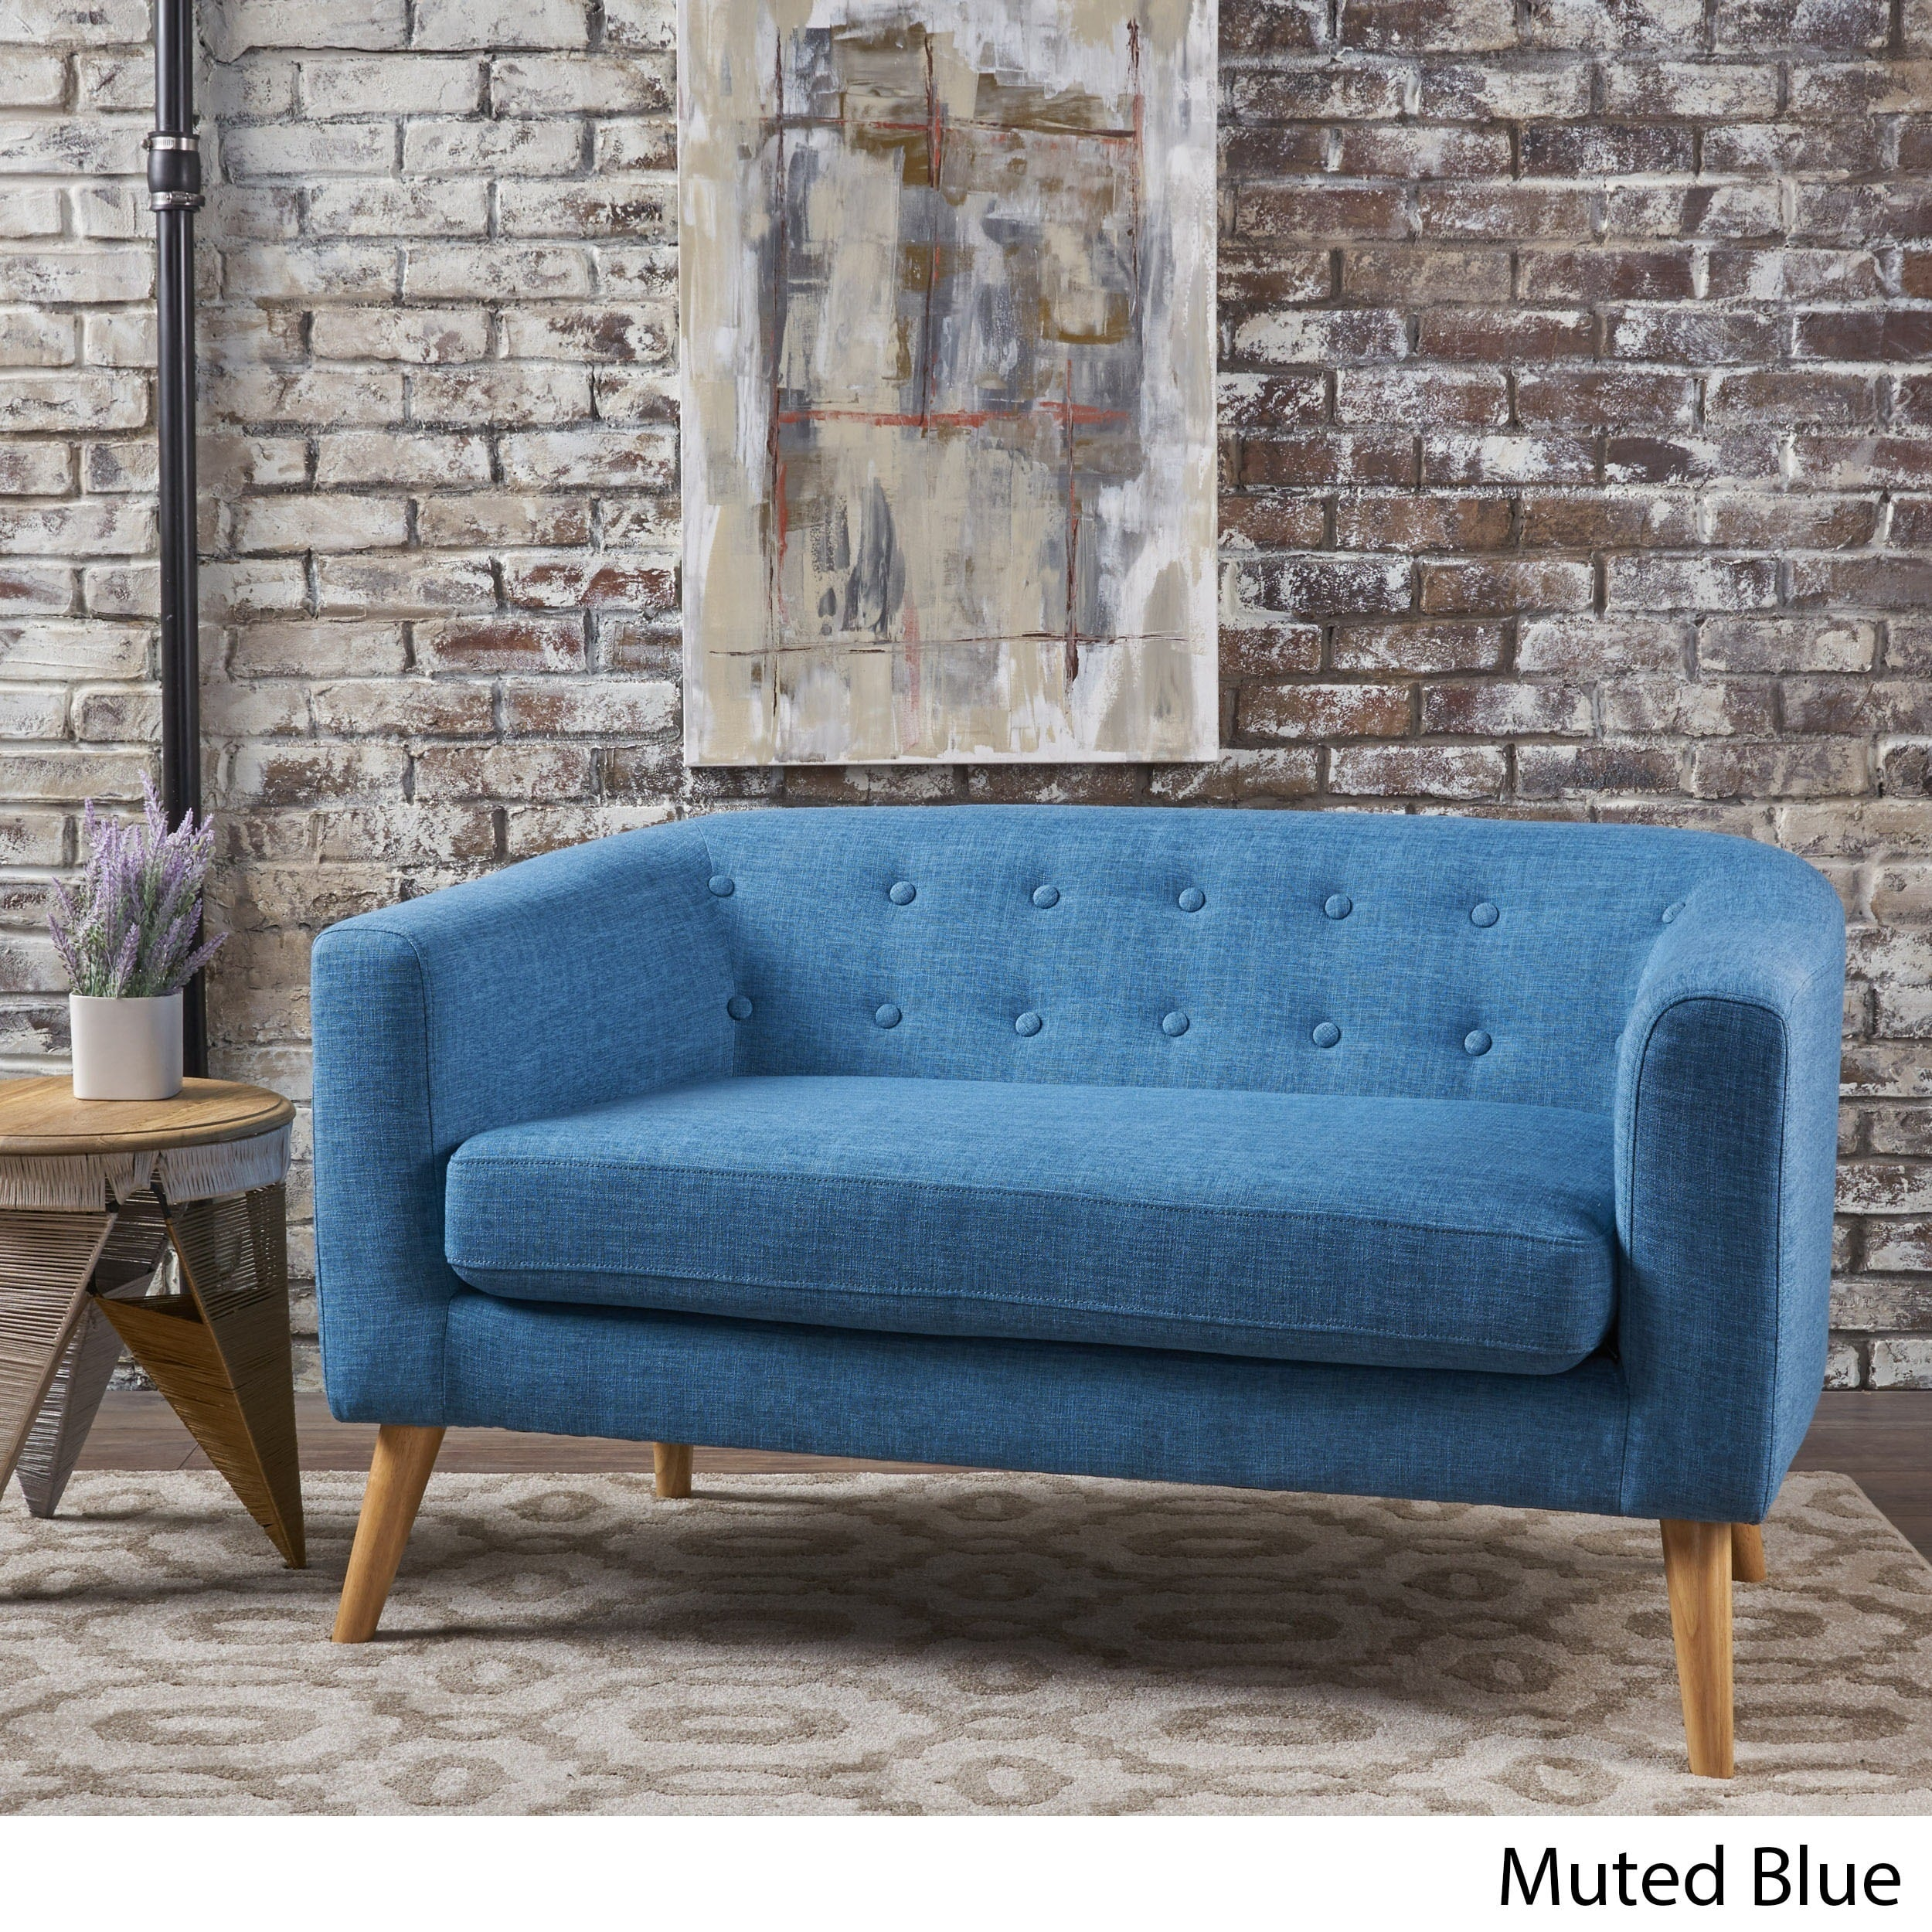 clean it damp cover single warrranty year keep can be pin is wiped the ikea klippan mild sponge or limited loveseat to with as cushion a detergent easy